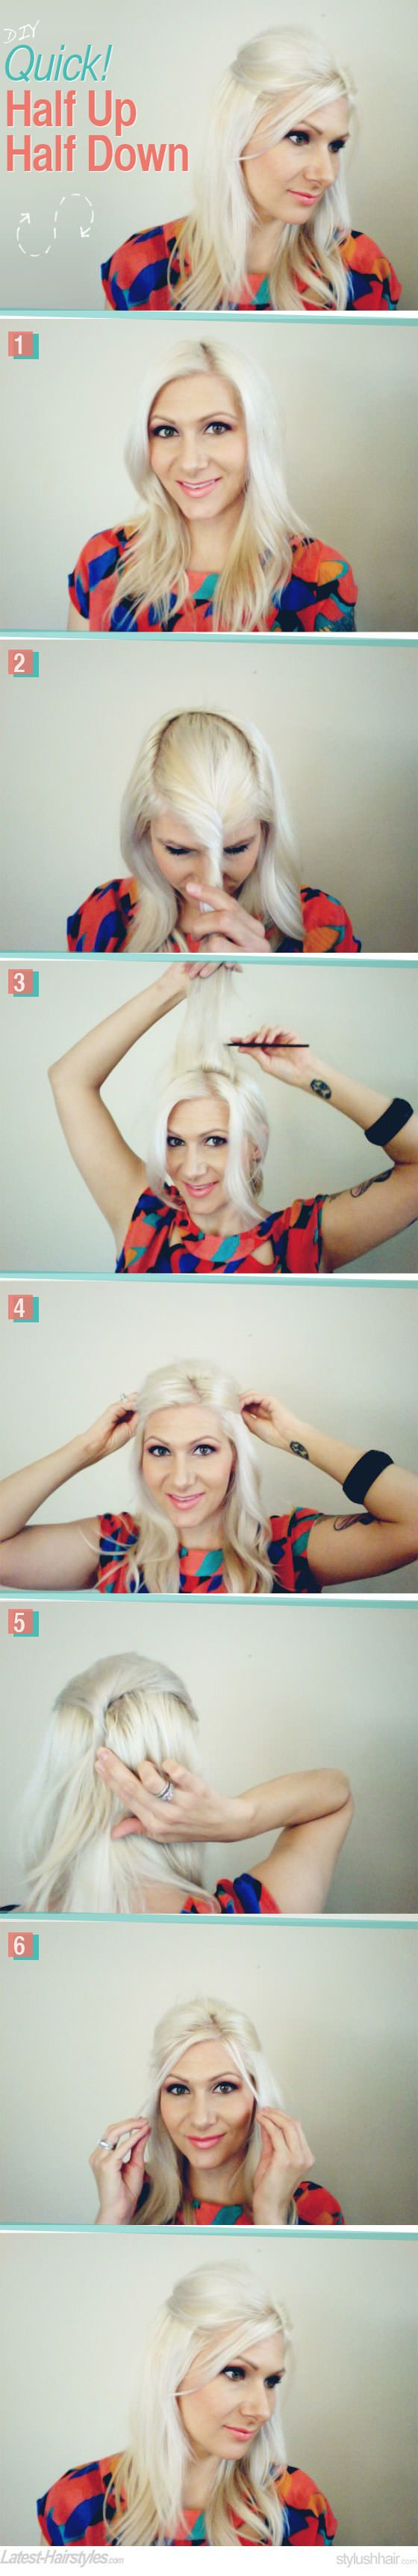 Get this super quick (and super cute!) half up look in 6 easy steps... http://www.latest-hairstyles.com/tutorials/quick-half-up-half-down-diy-hair.html